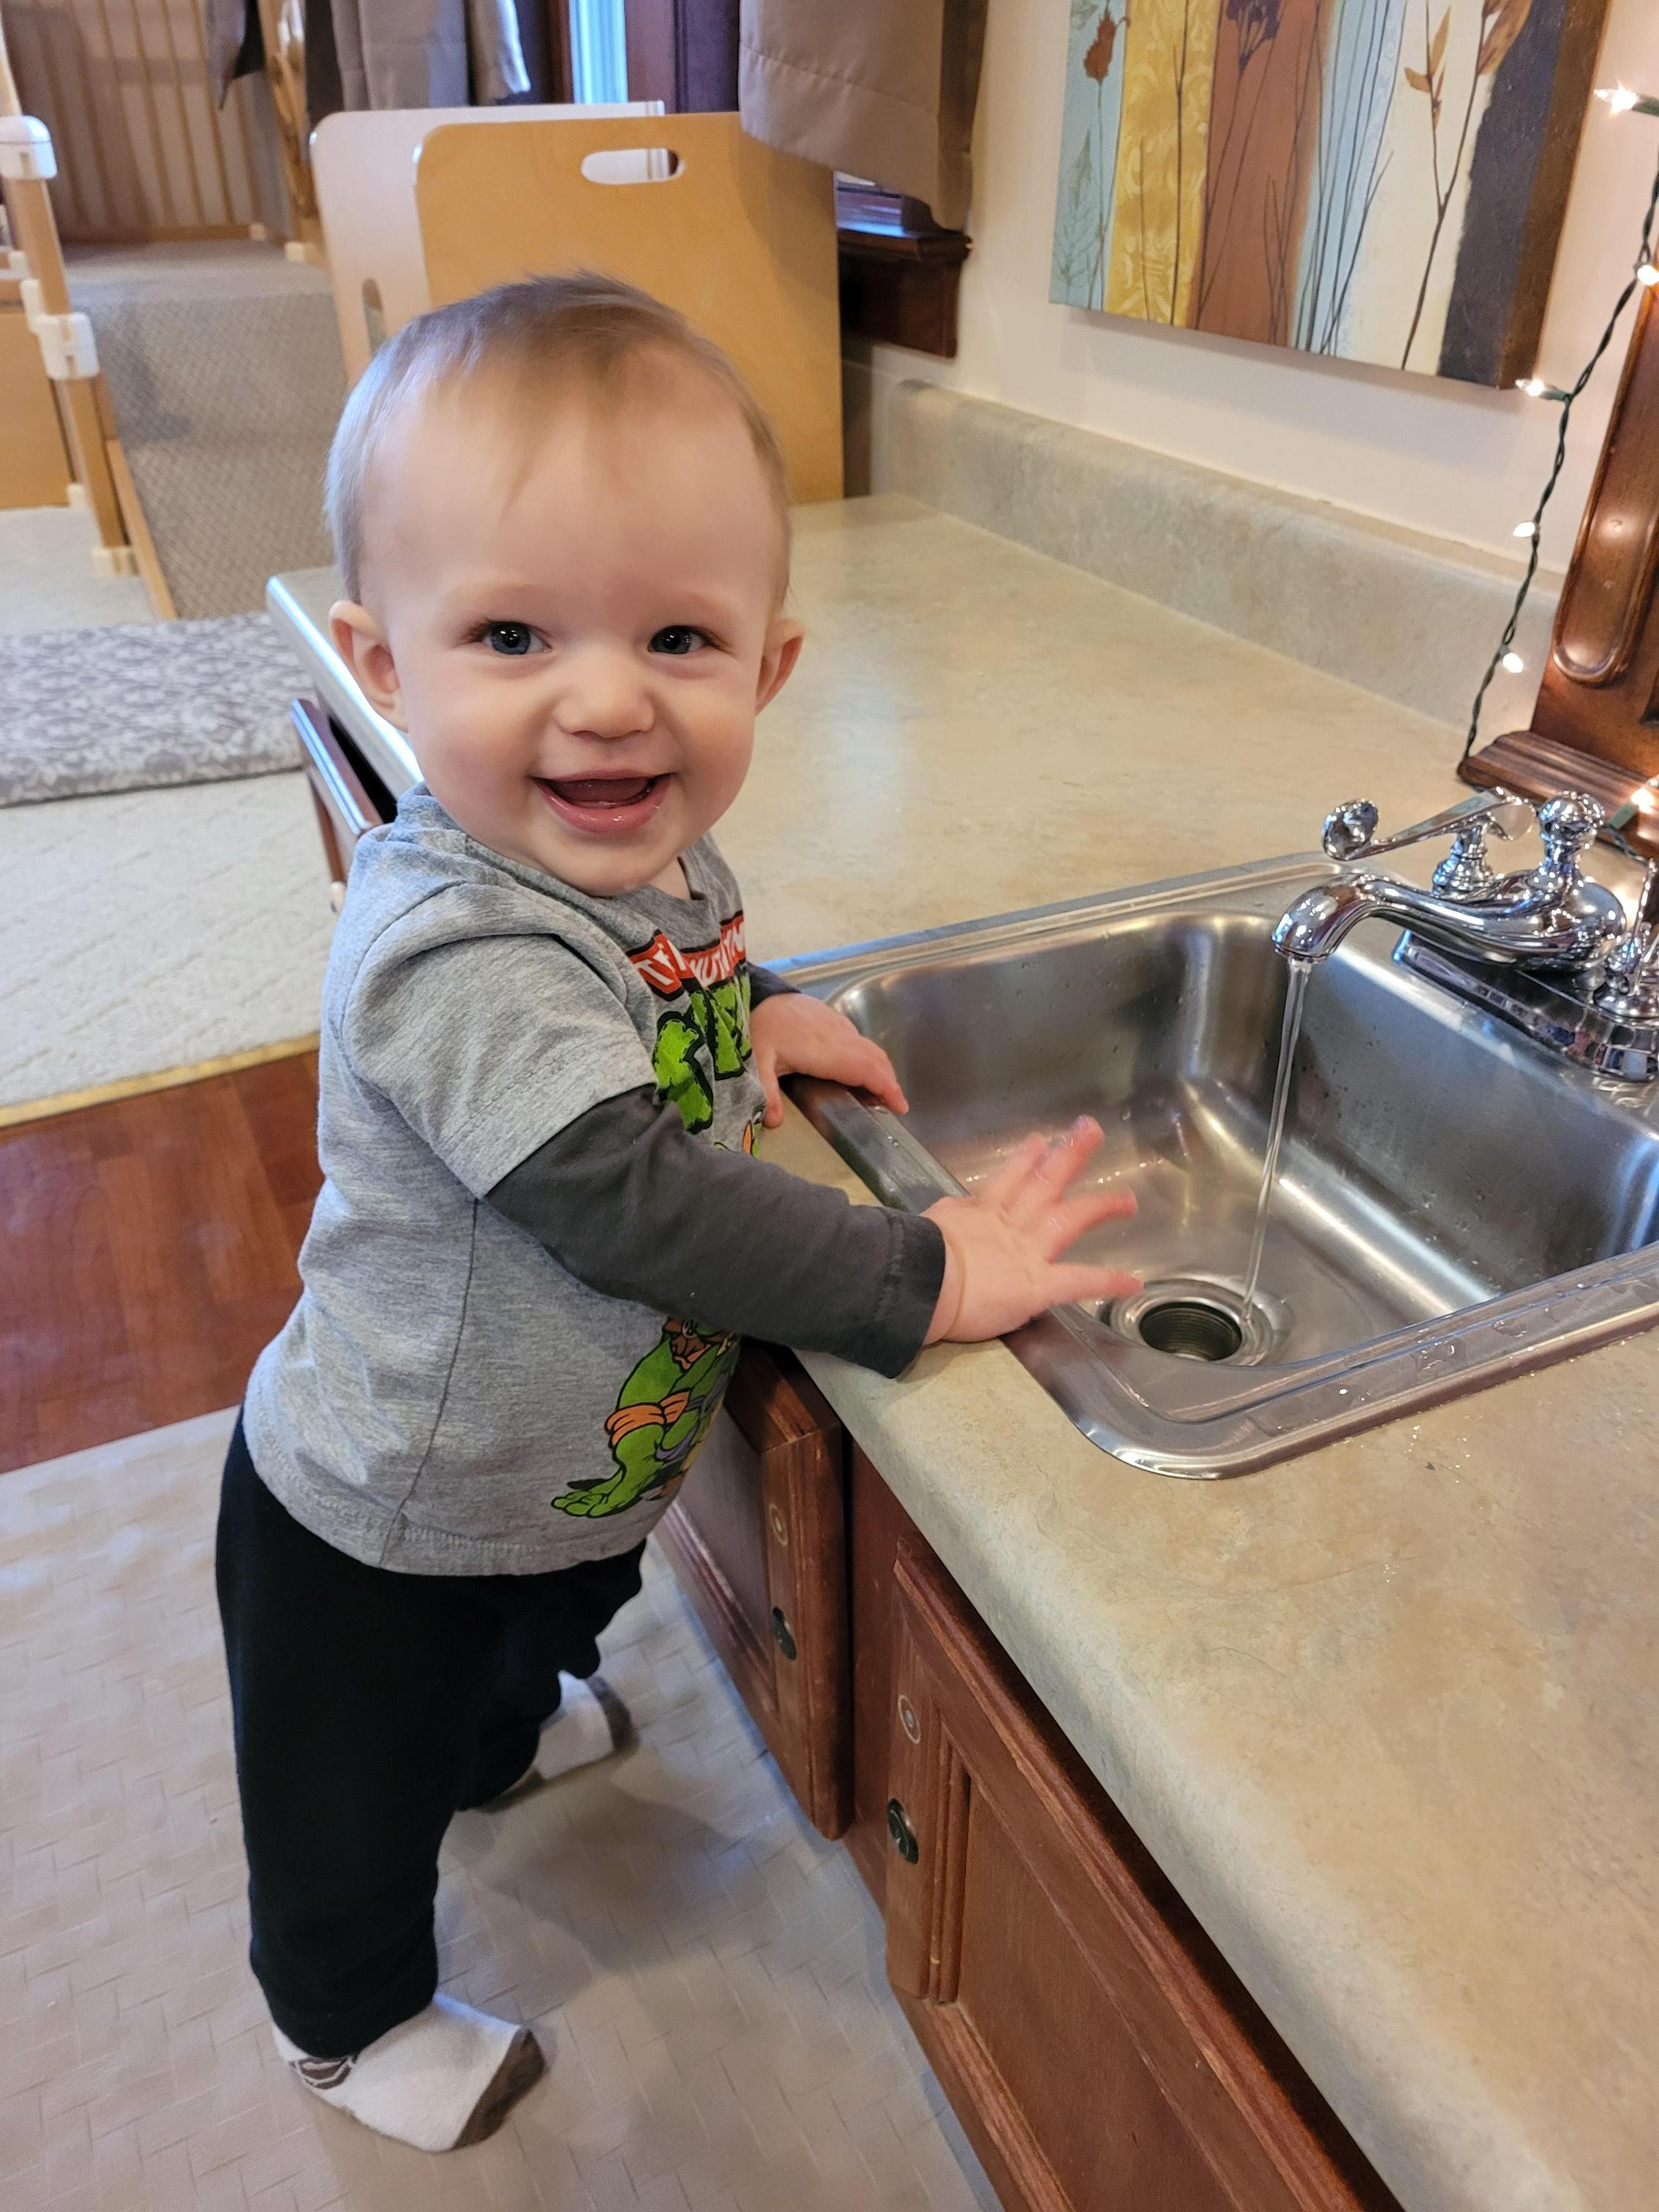 Baby at sink